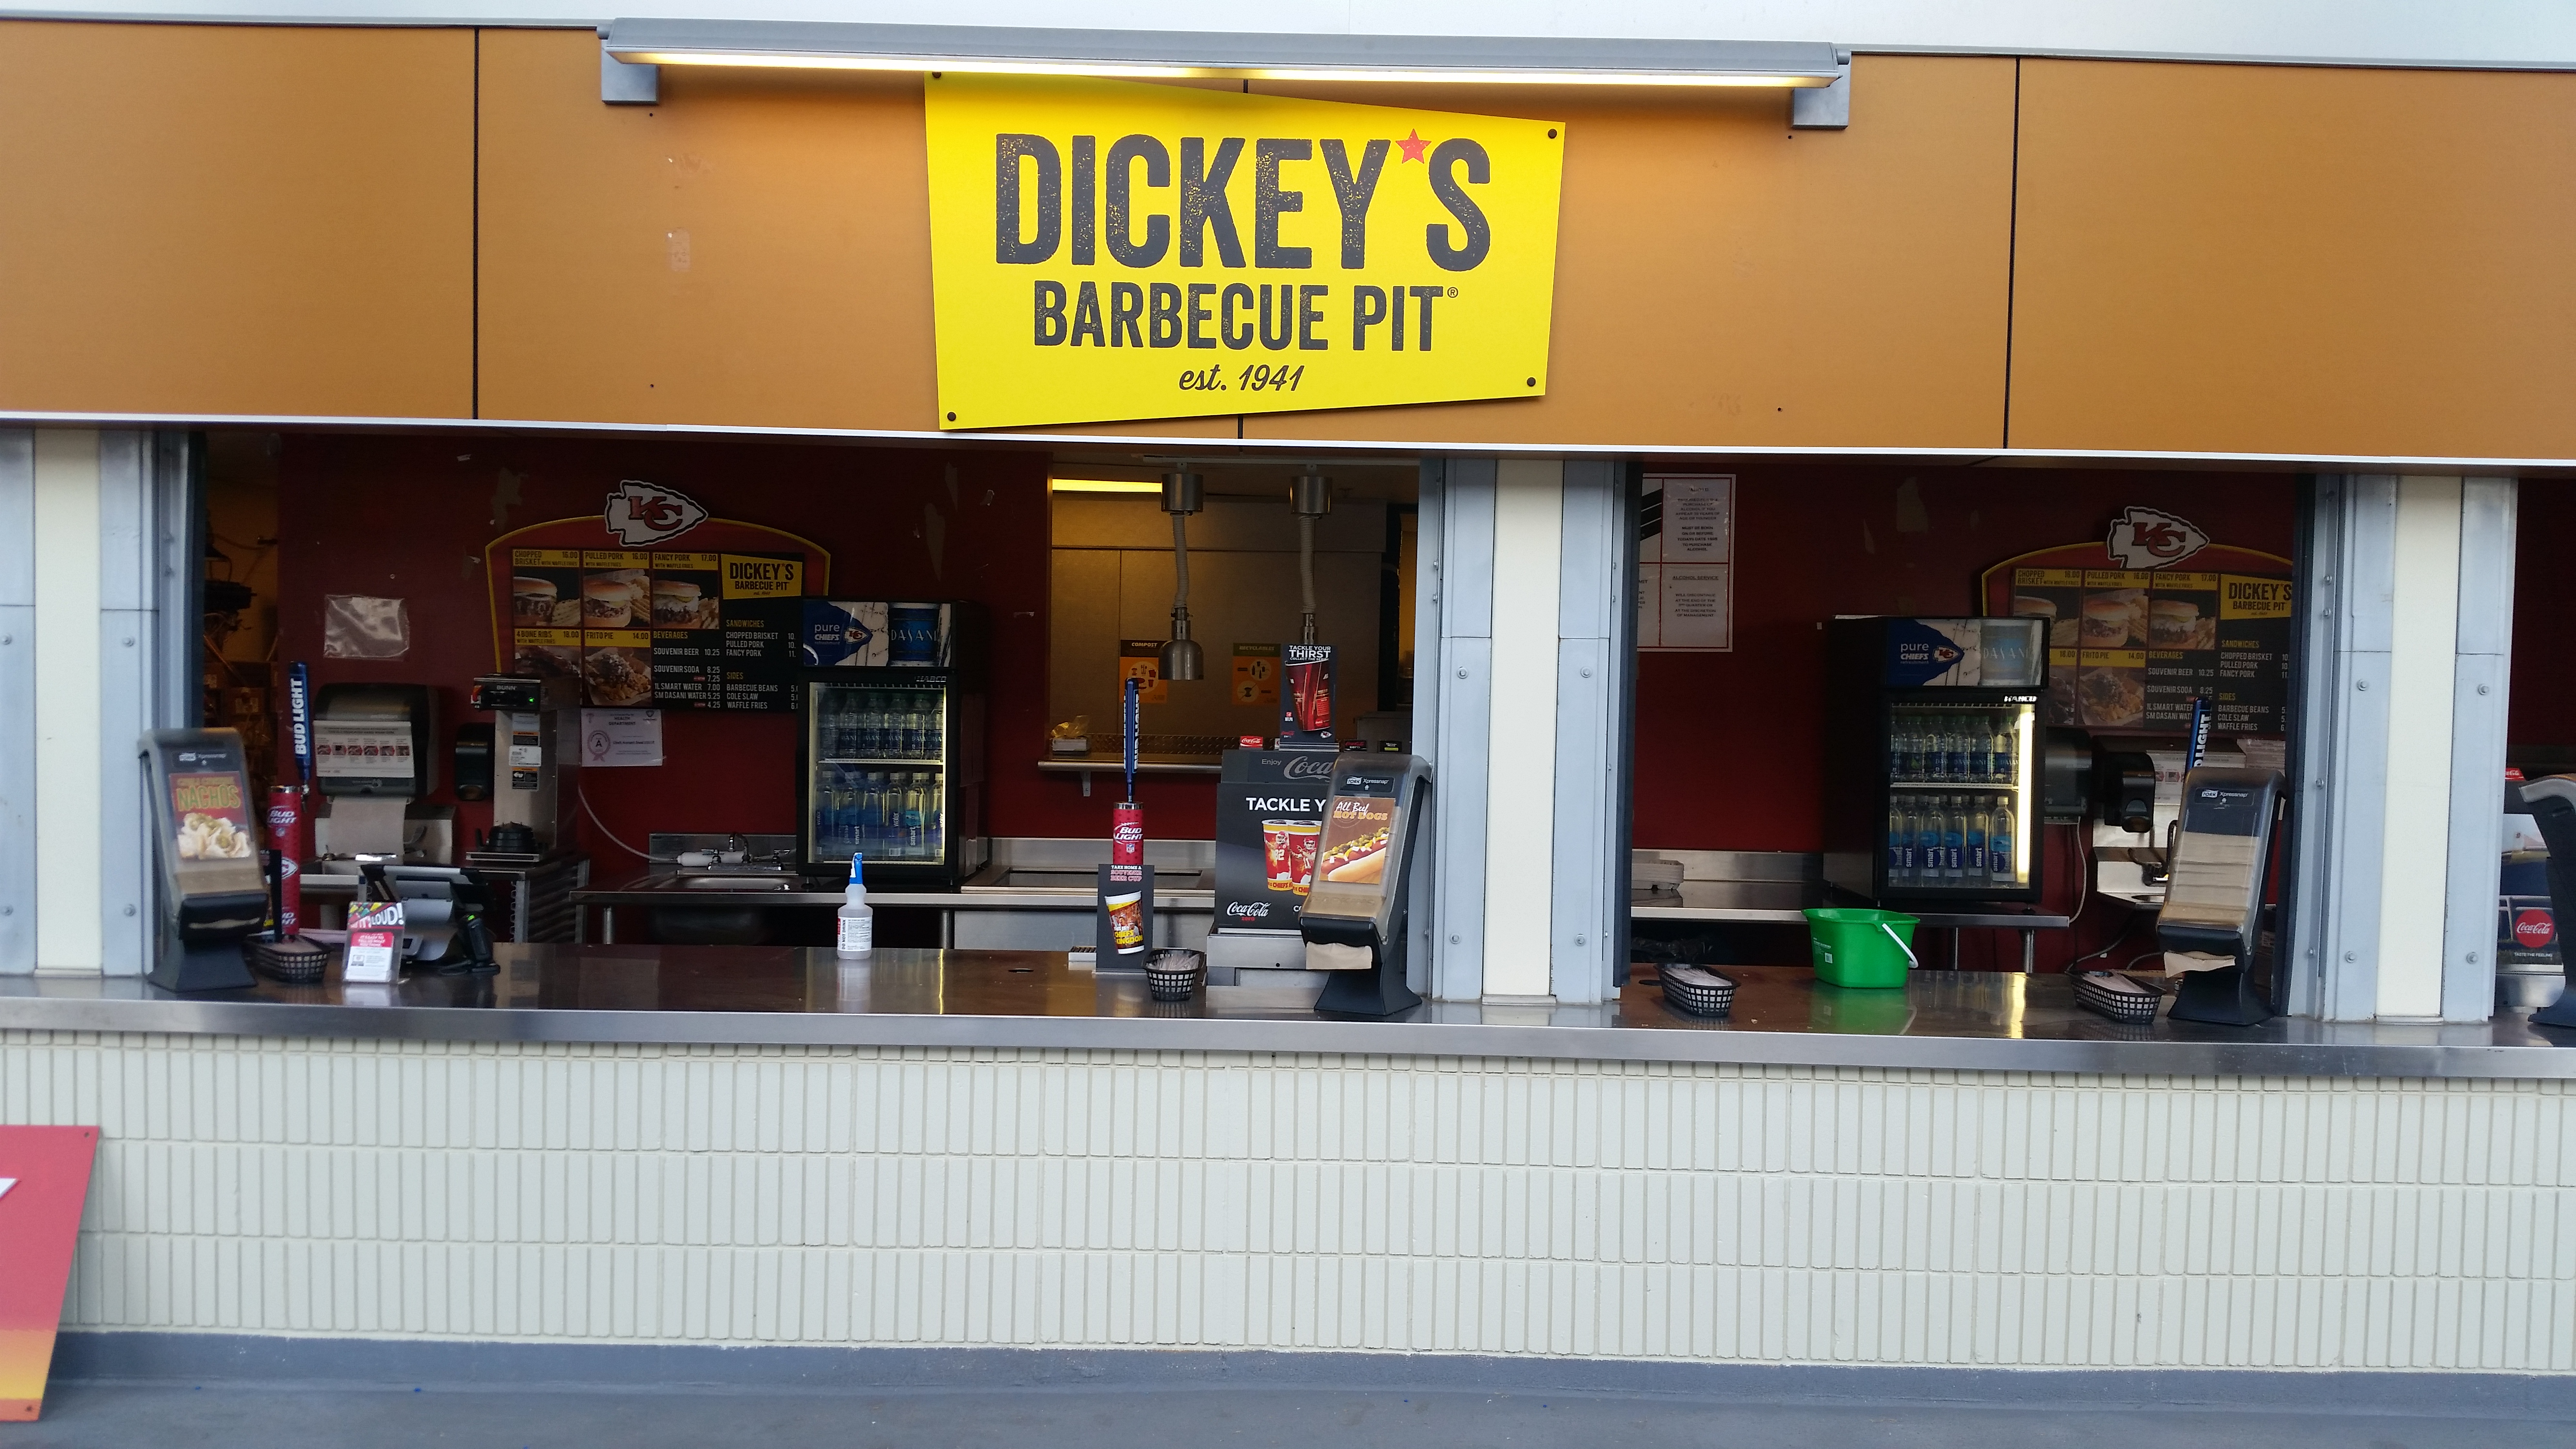 Dickey's Barbecue Pit Scores at Arrowhead Stadium in Kansas City, MO